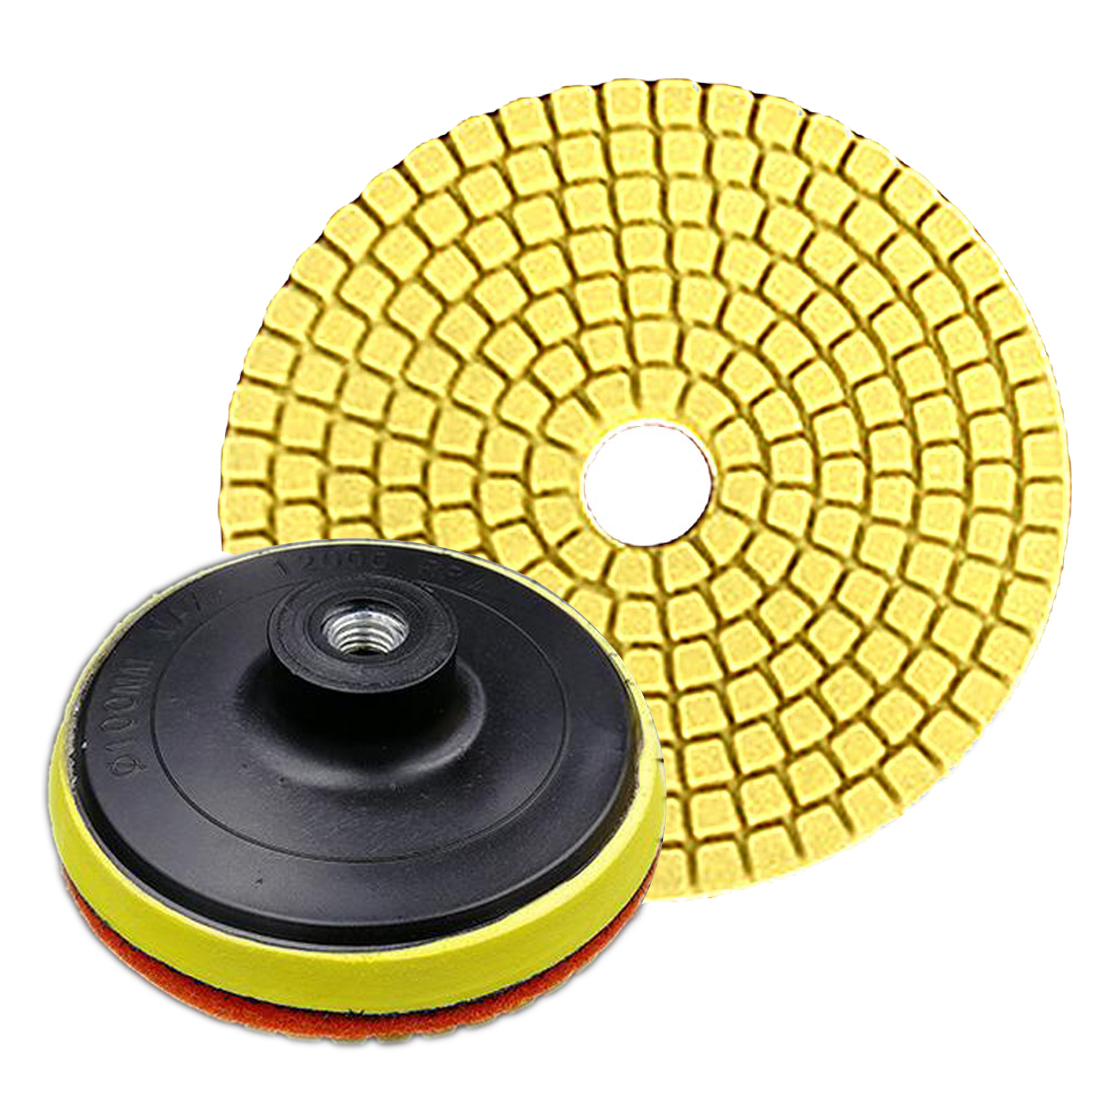 Tools Special Section 80-180mm Polishing Self-adhesive Disc Polishing Sandpaper Sheet Adhesive Disc Chuck Angle Grinder Sticky Plate For Car 2019 Official